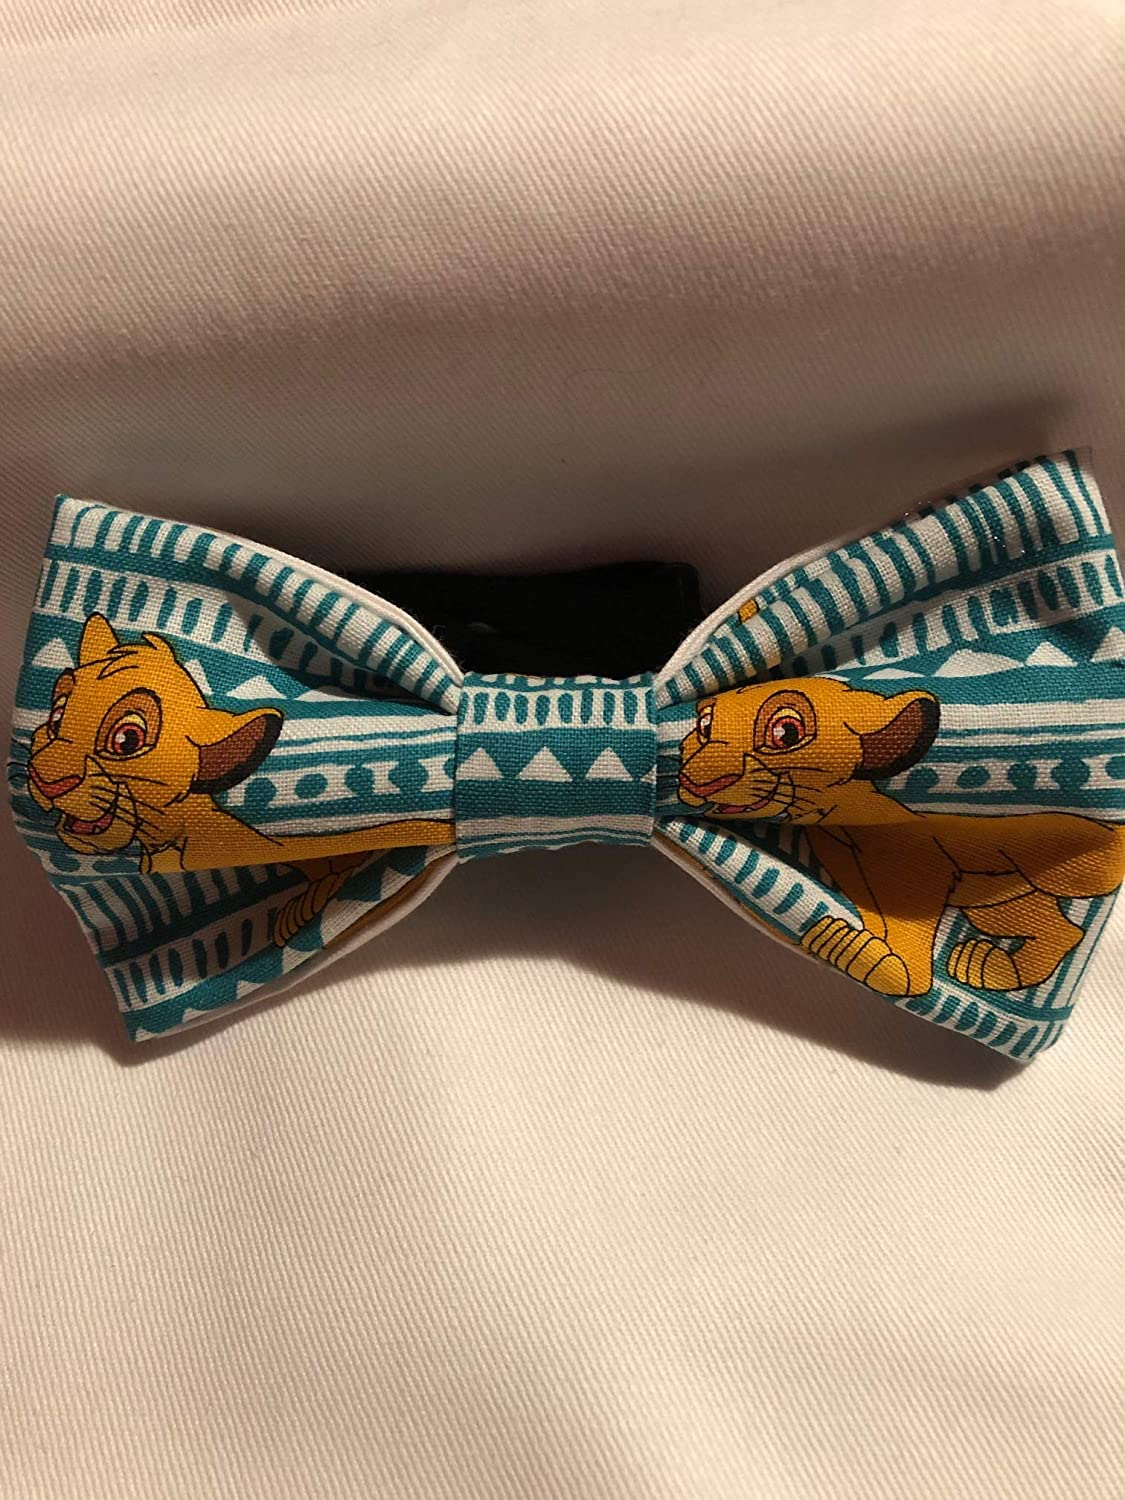 teen cotton pre-tied bow tie with black cotton twill strap. Lion King Young Simba youth toddler sized